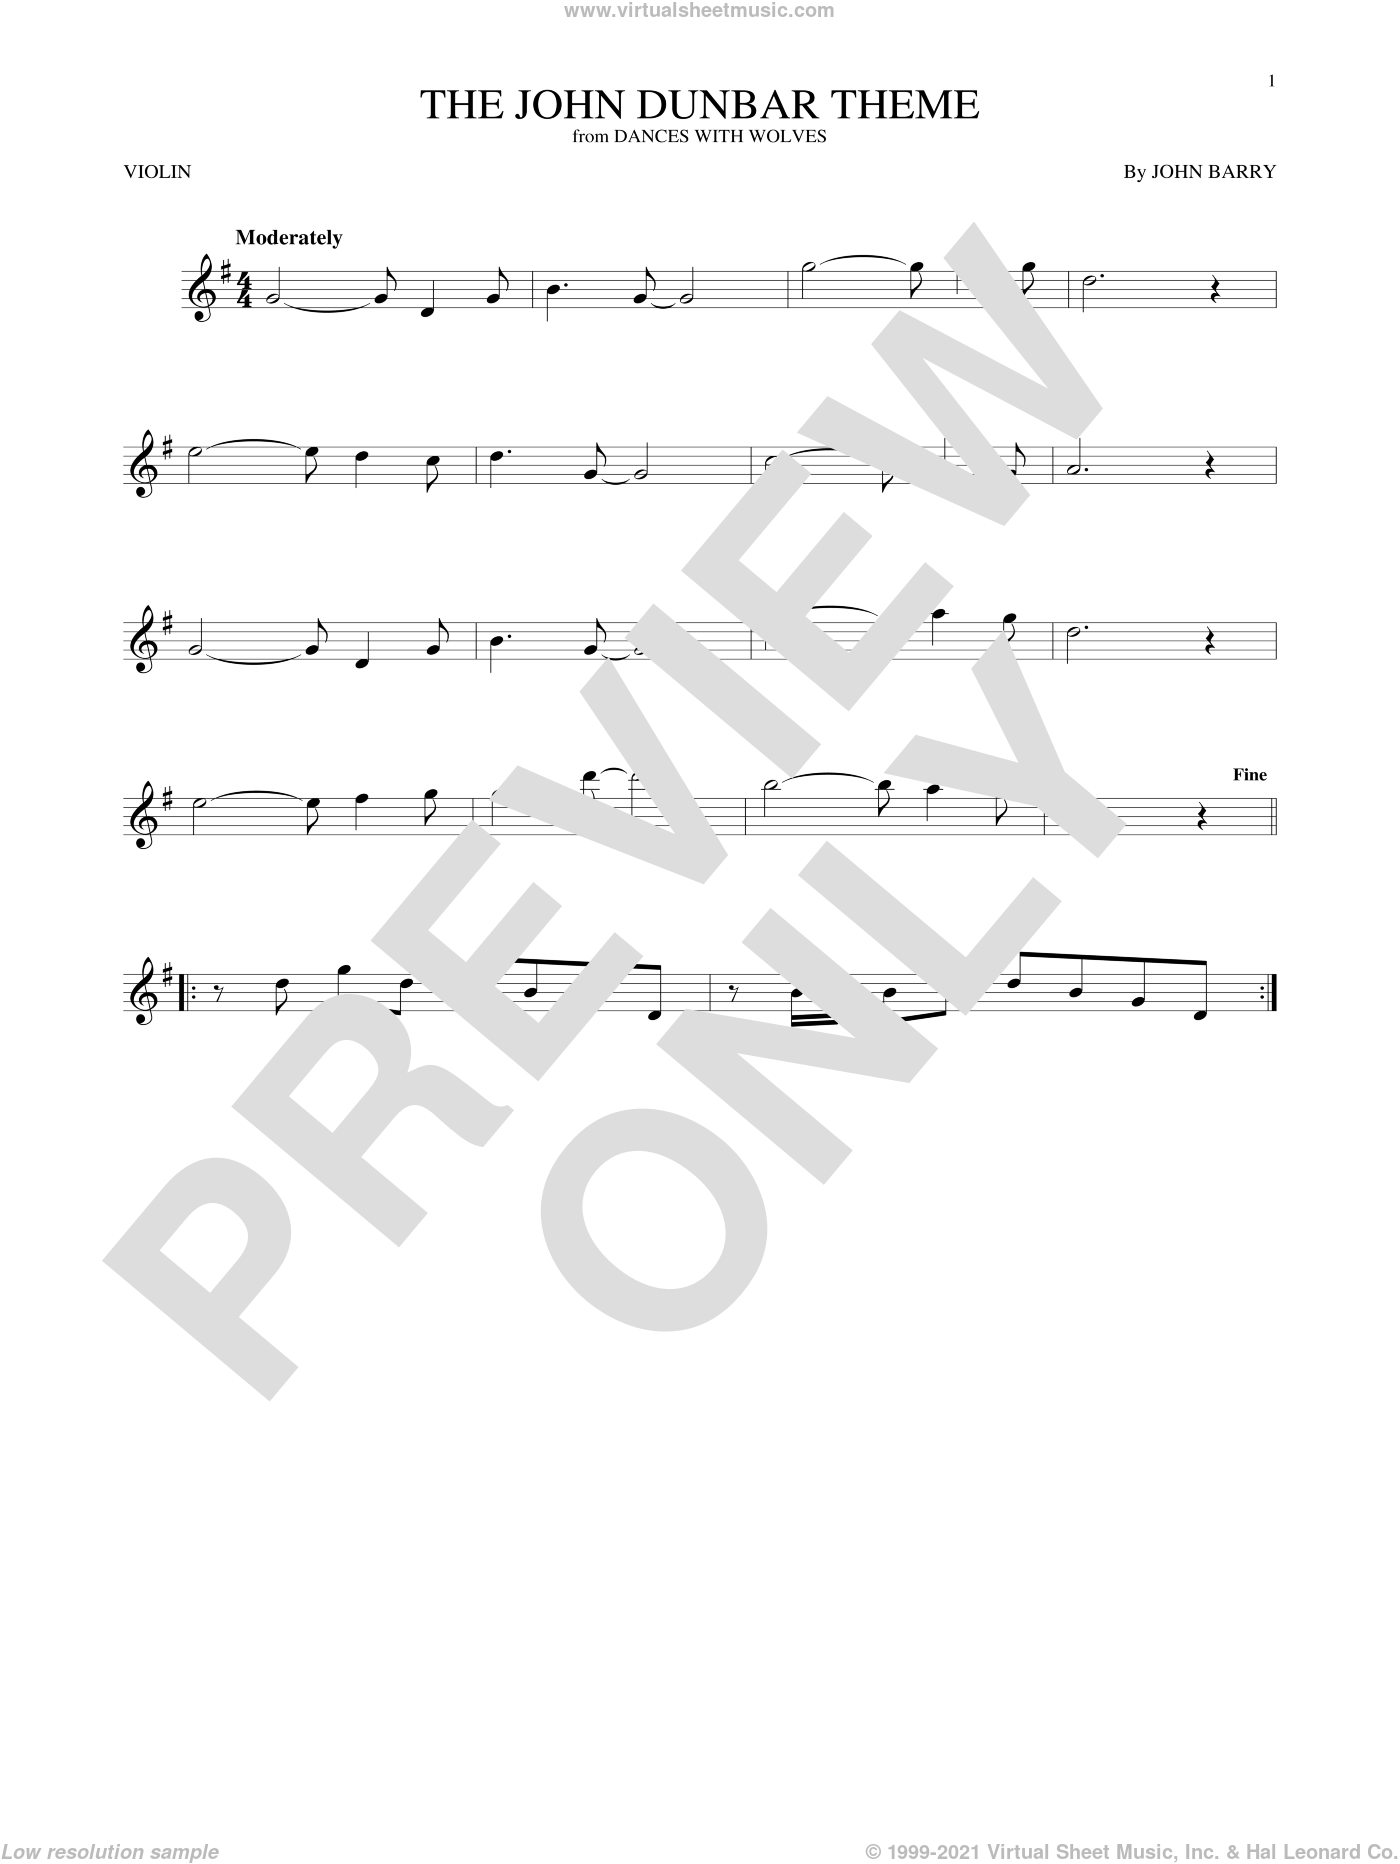 The John Dunbar Theme sheet music for violin solo by John Barry